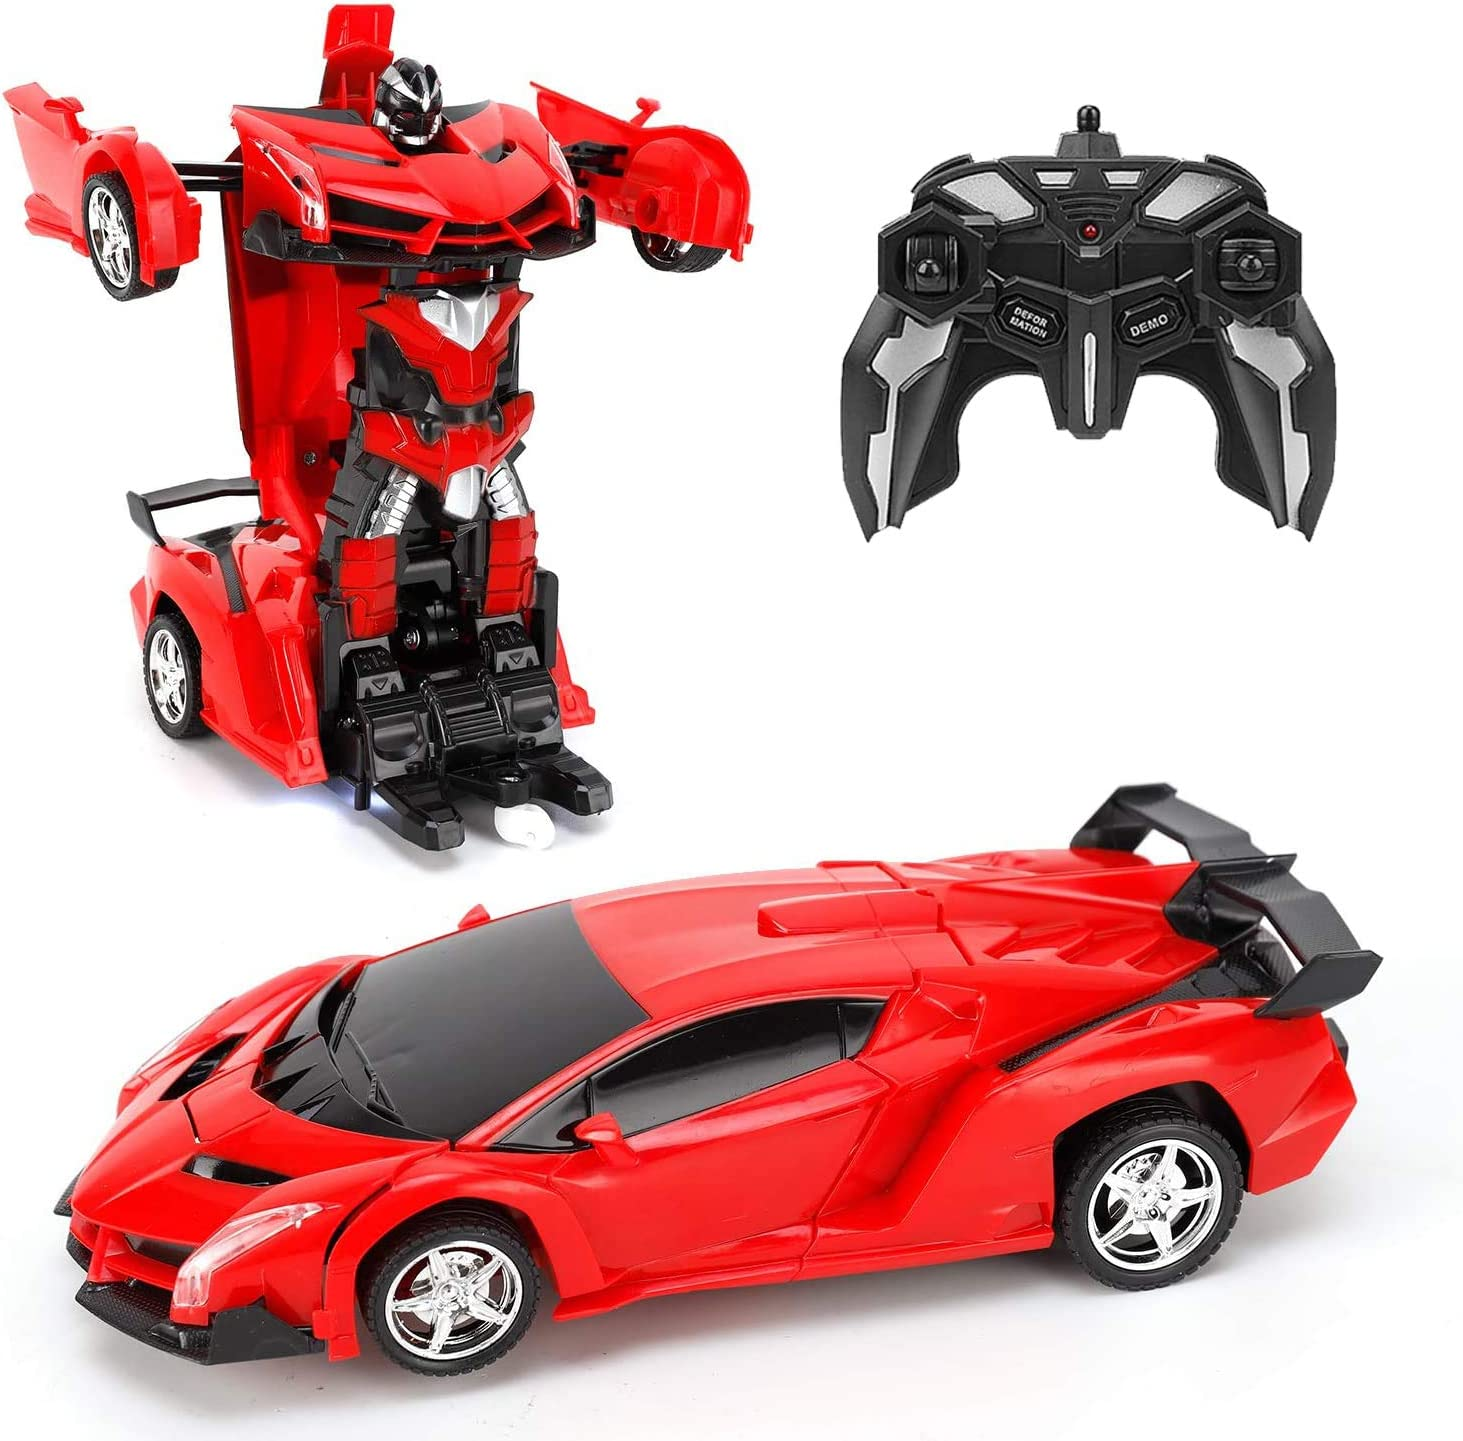 GAINER Transform Car Robot, Robot Deformation Car Model Toy for Children, Transforming Robot Remote Control Car with One Button Transformation & 360 Speed Drifting 1:18 Scale